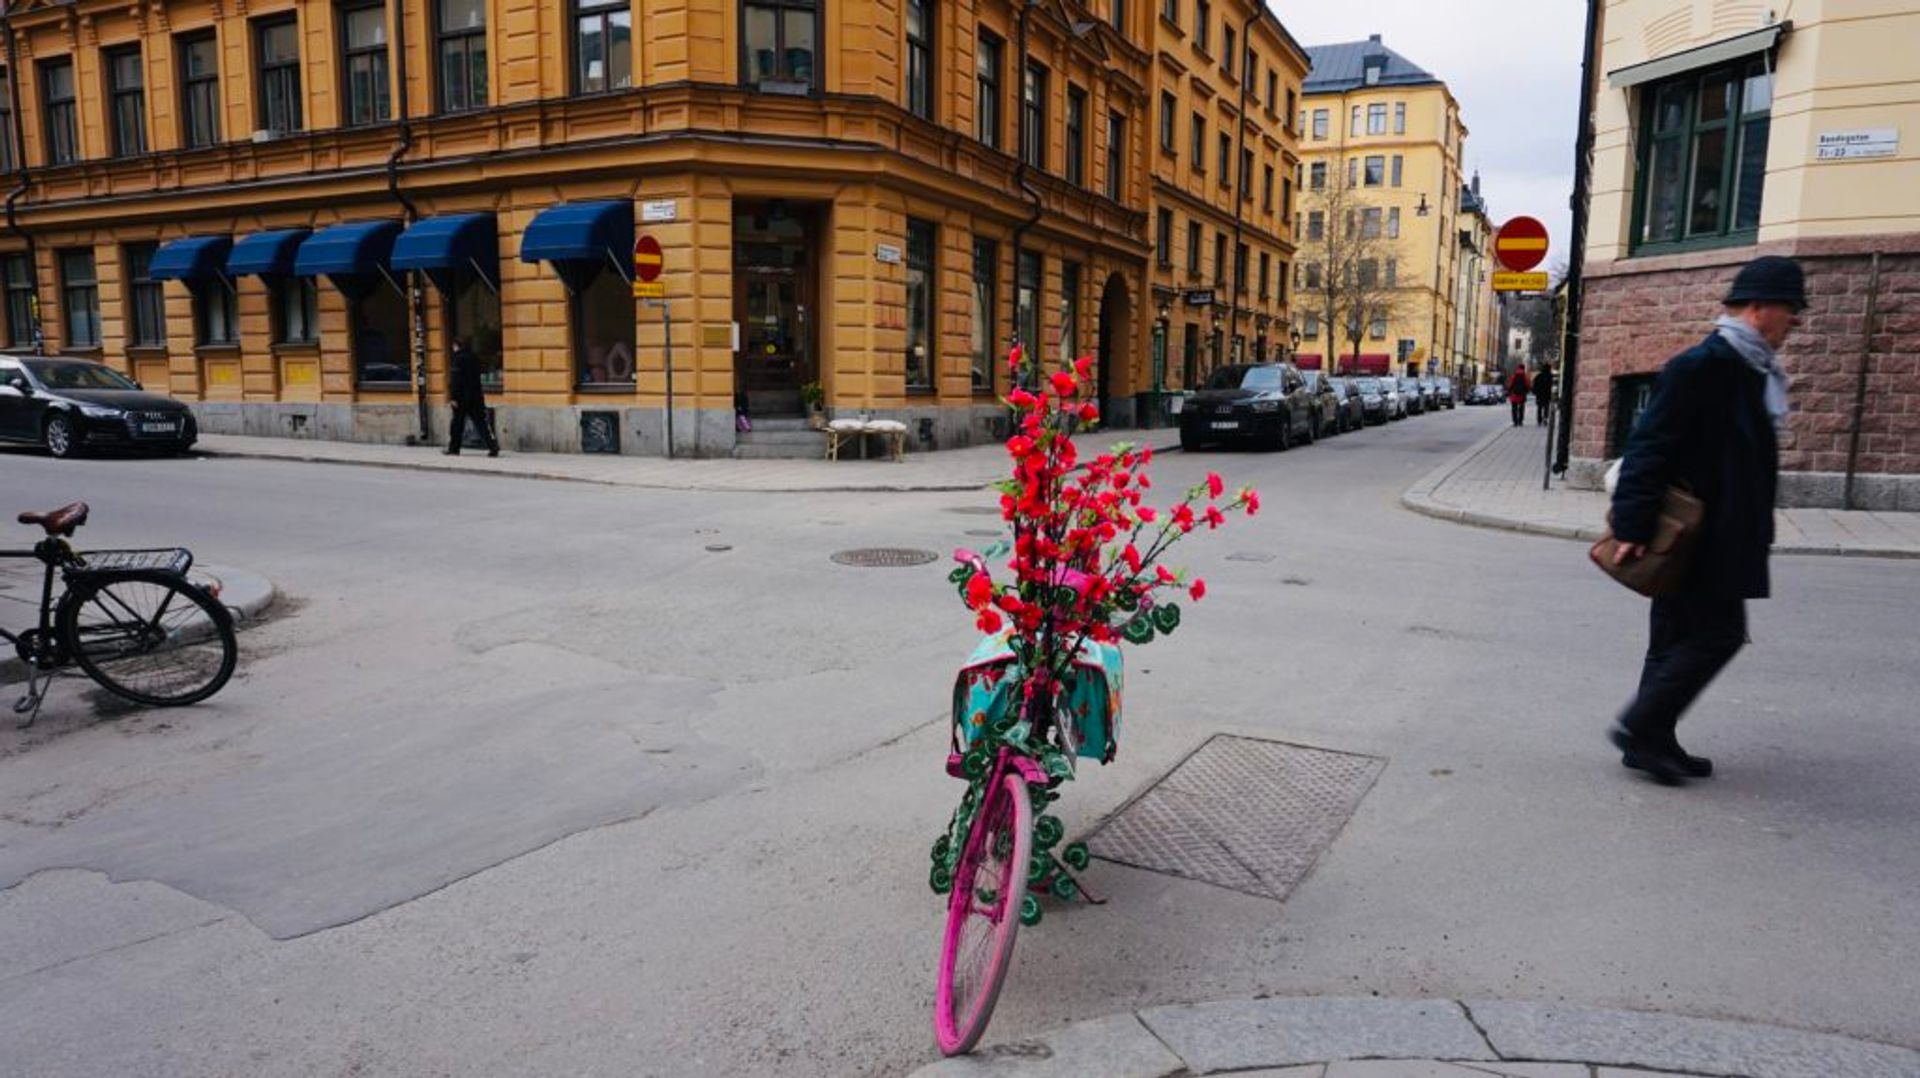 A pink bicycle parked outside a store.